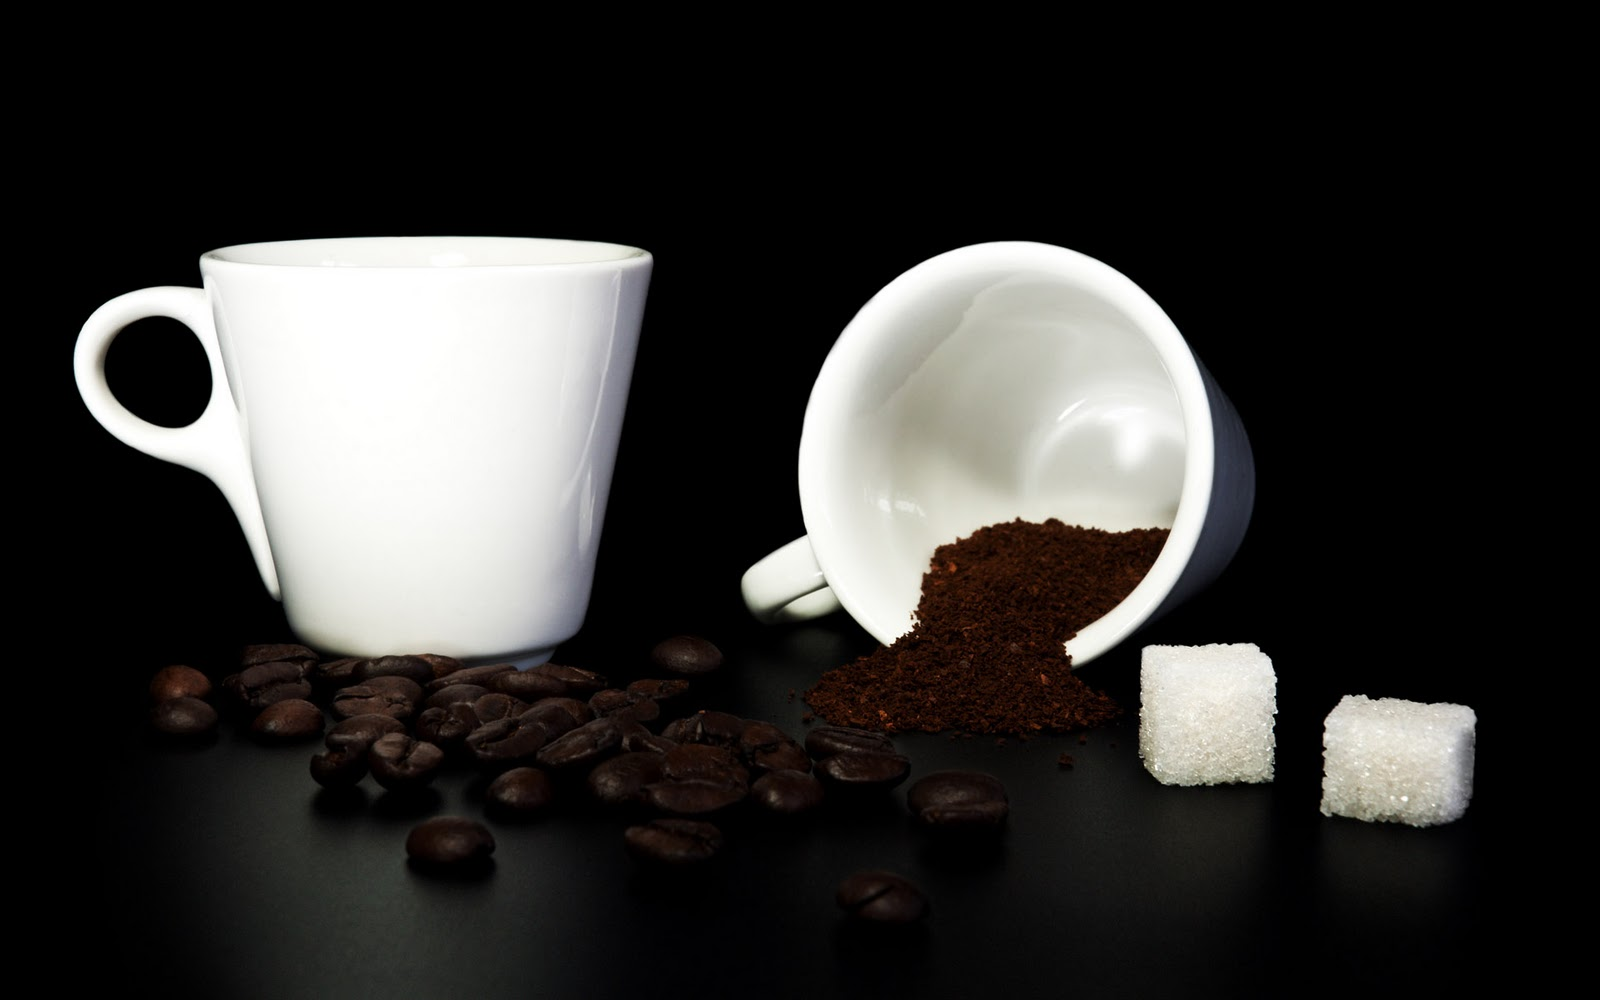 COFFEE HD WALLPAPERS ~ HD WALLPAPERS